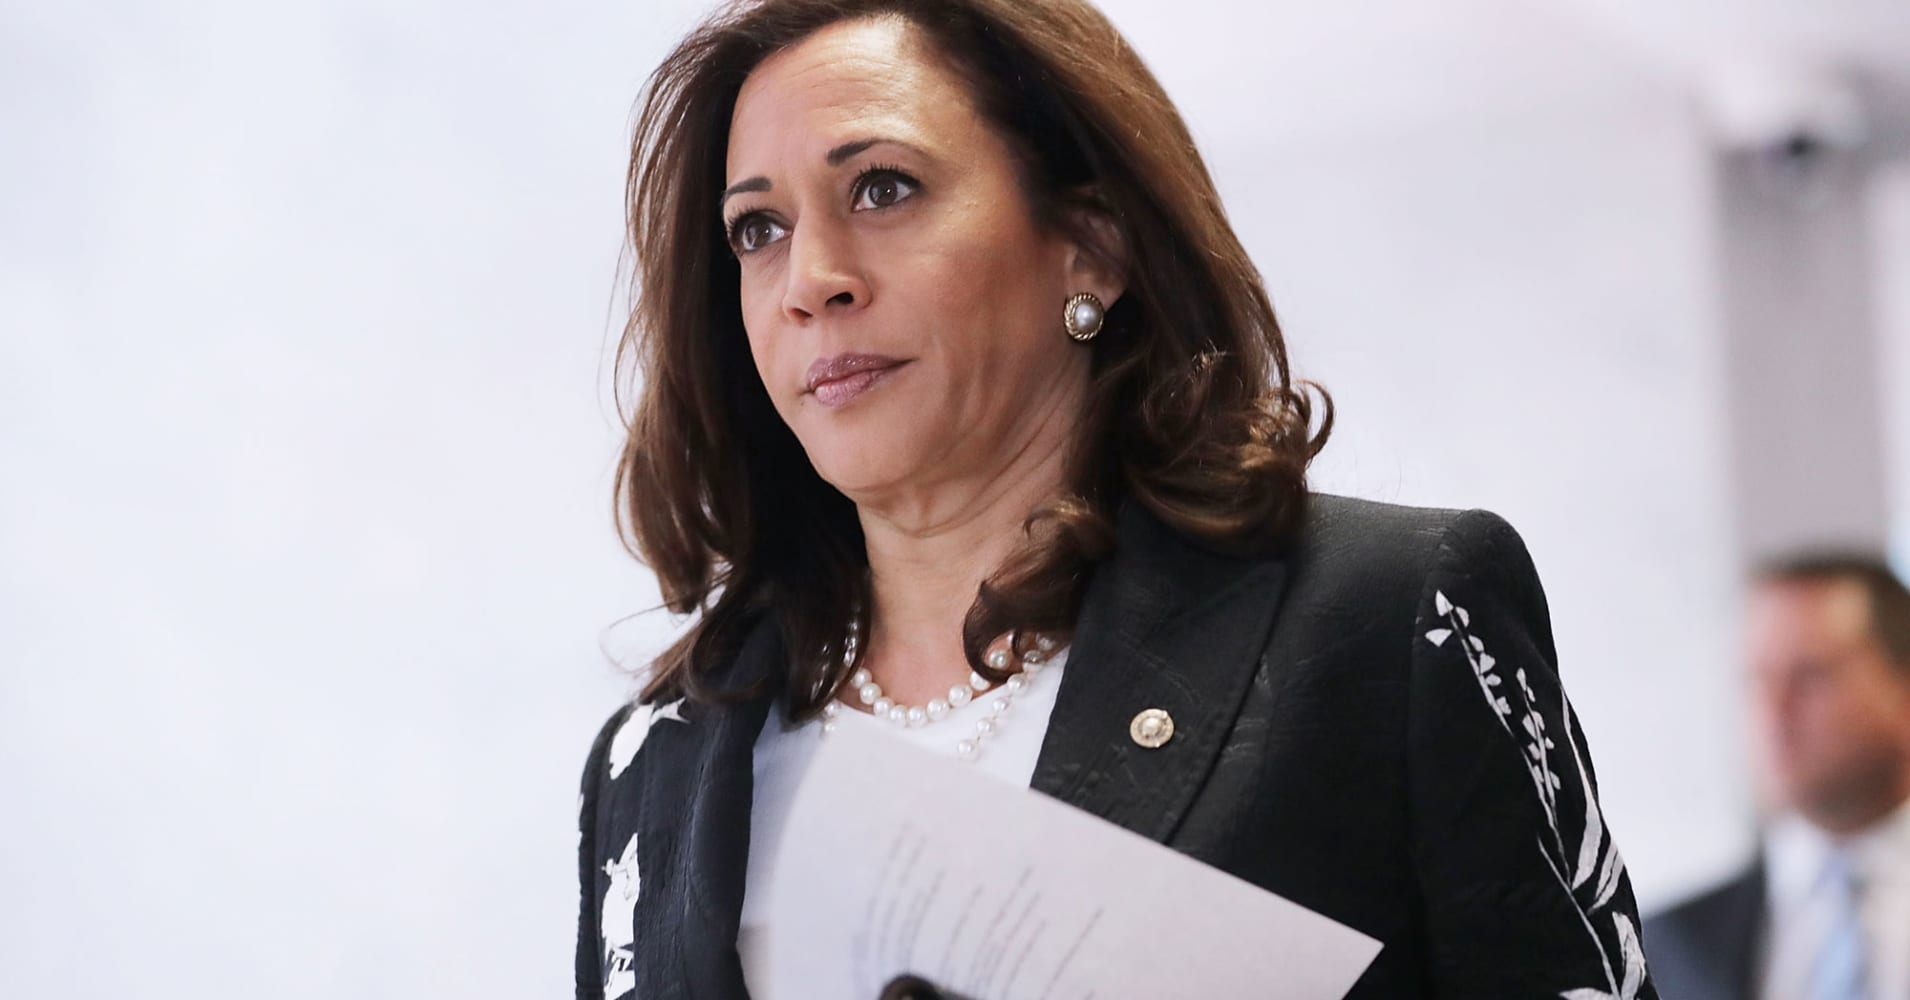 Kamala Harris' complicated history with Wall Street will come under scrutiny in the 2020 race